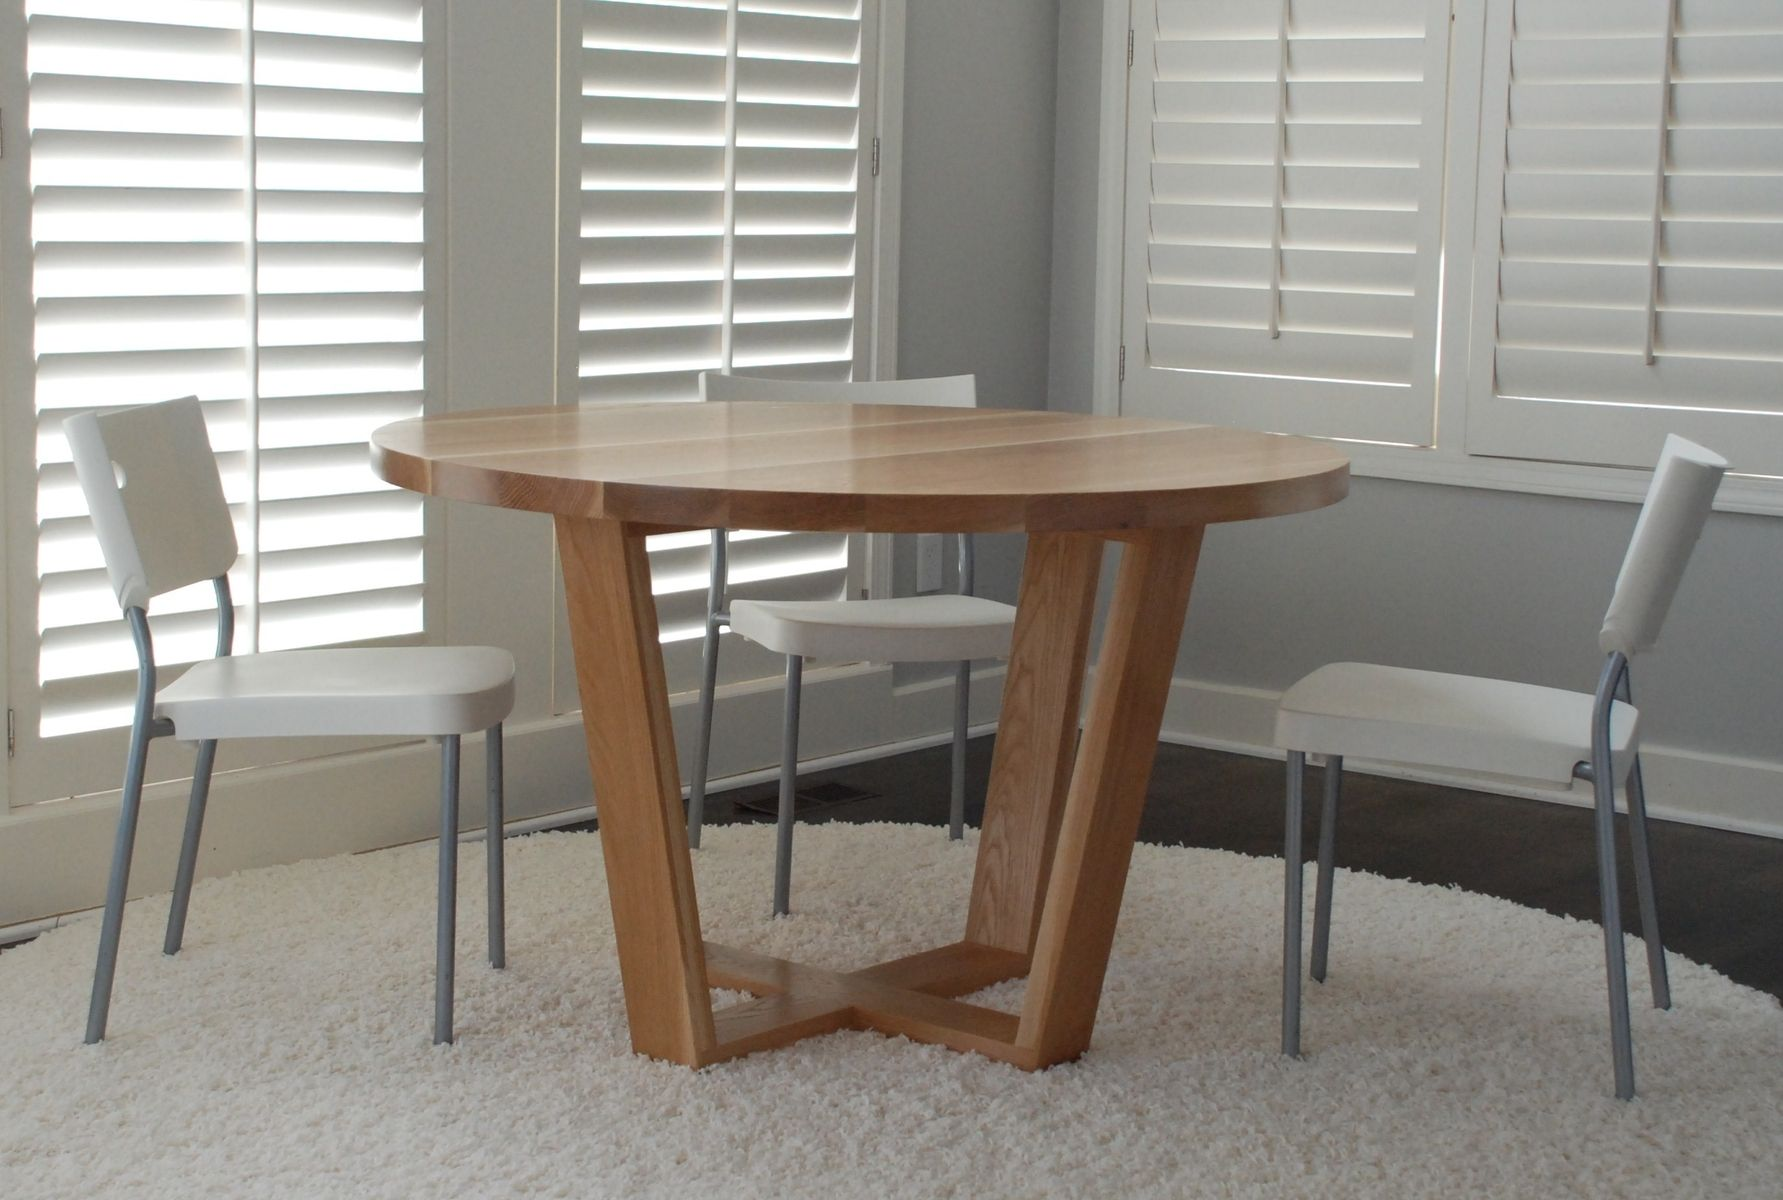 Angled Leg Round Dining Table